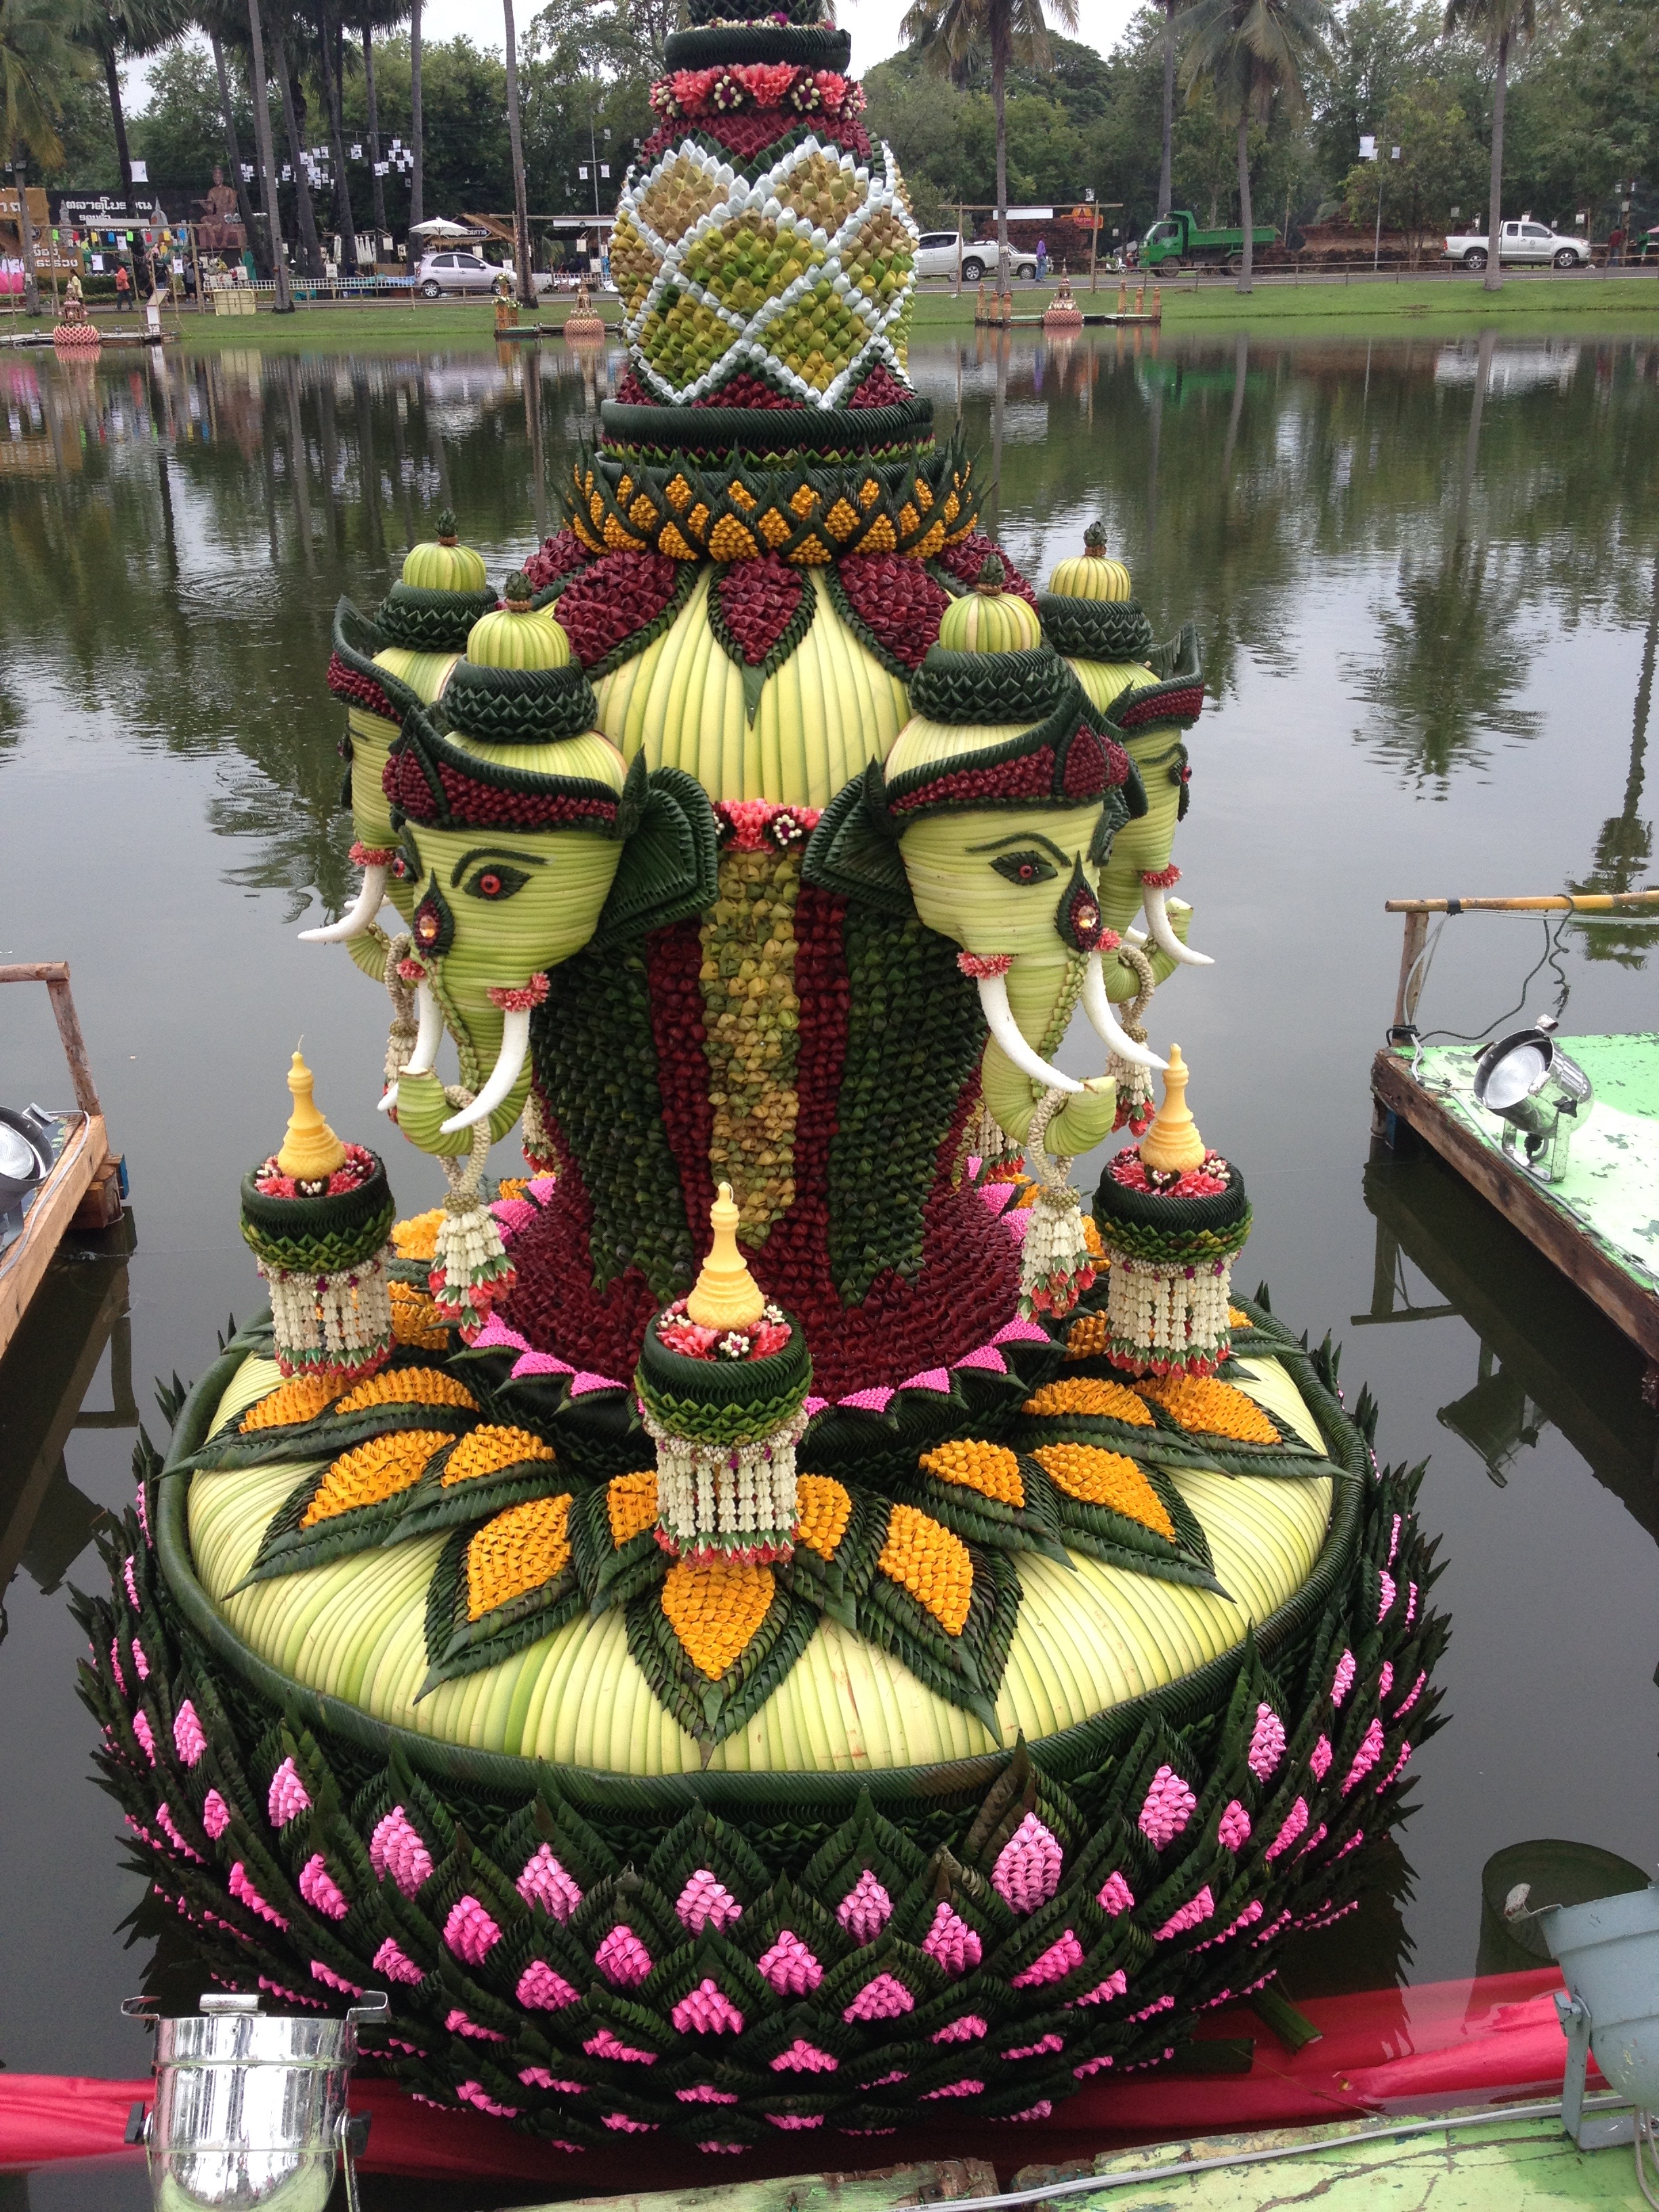 One of the krathongs. These are banana leaf floats that are set off into the water with lit candles and incense. You make your wishes, ask for forgiveness, and send it and all the bad karma off down the river.